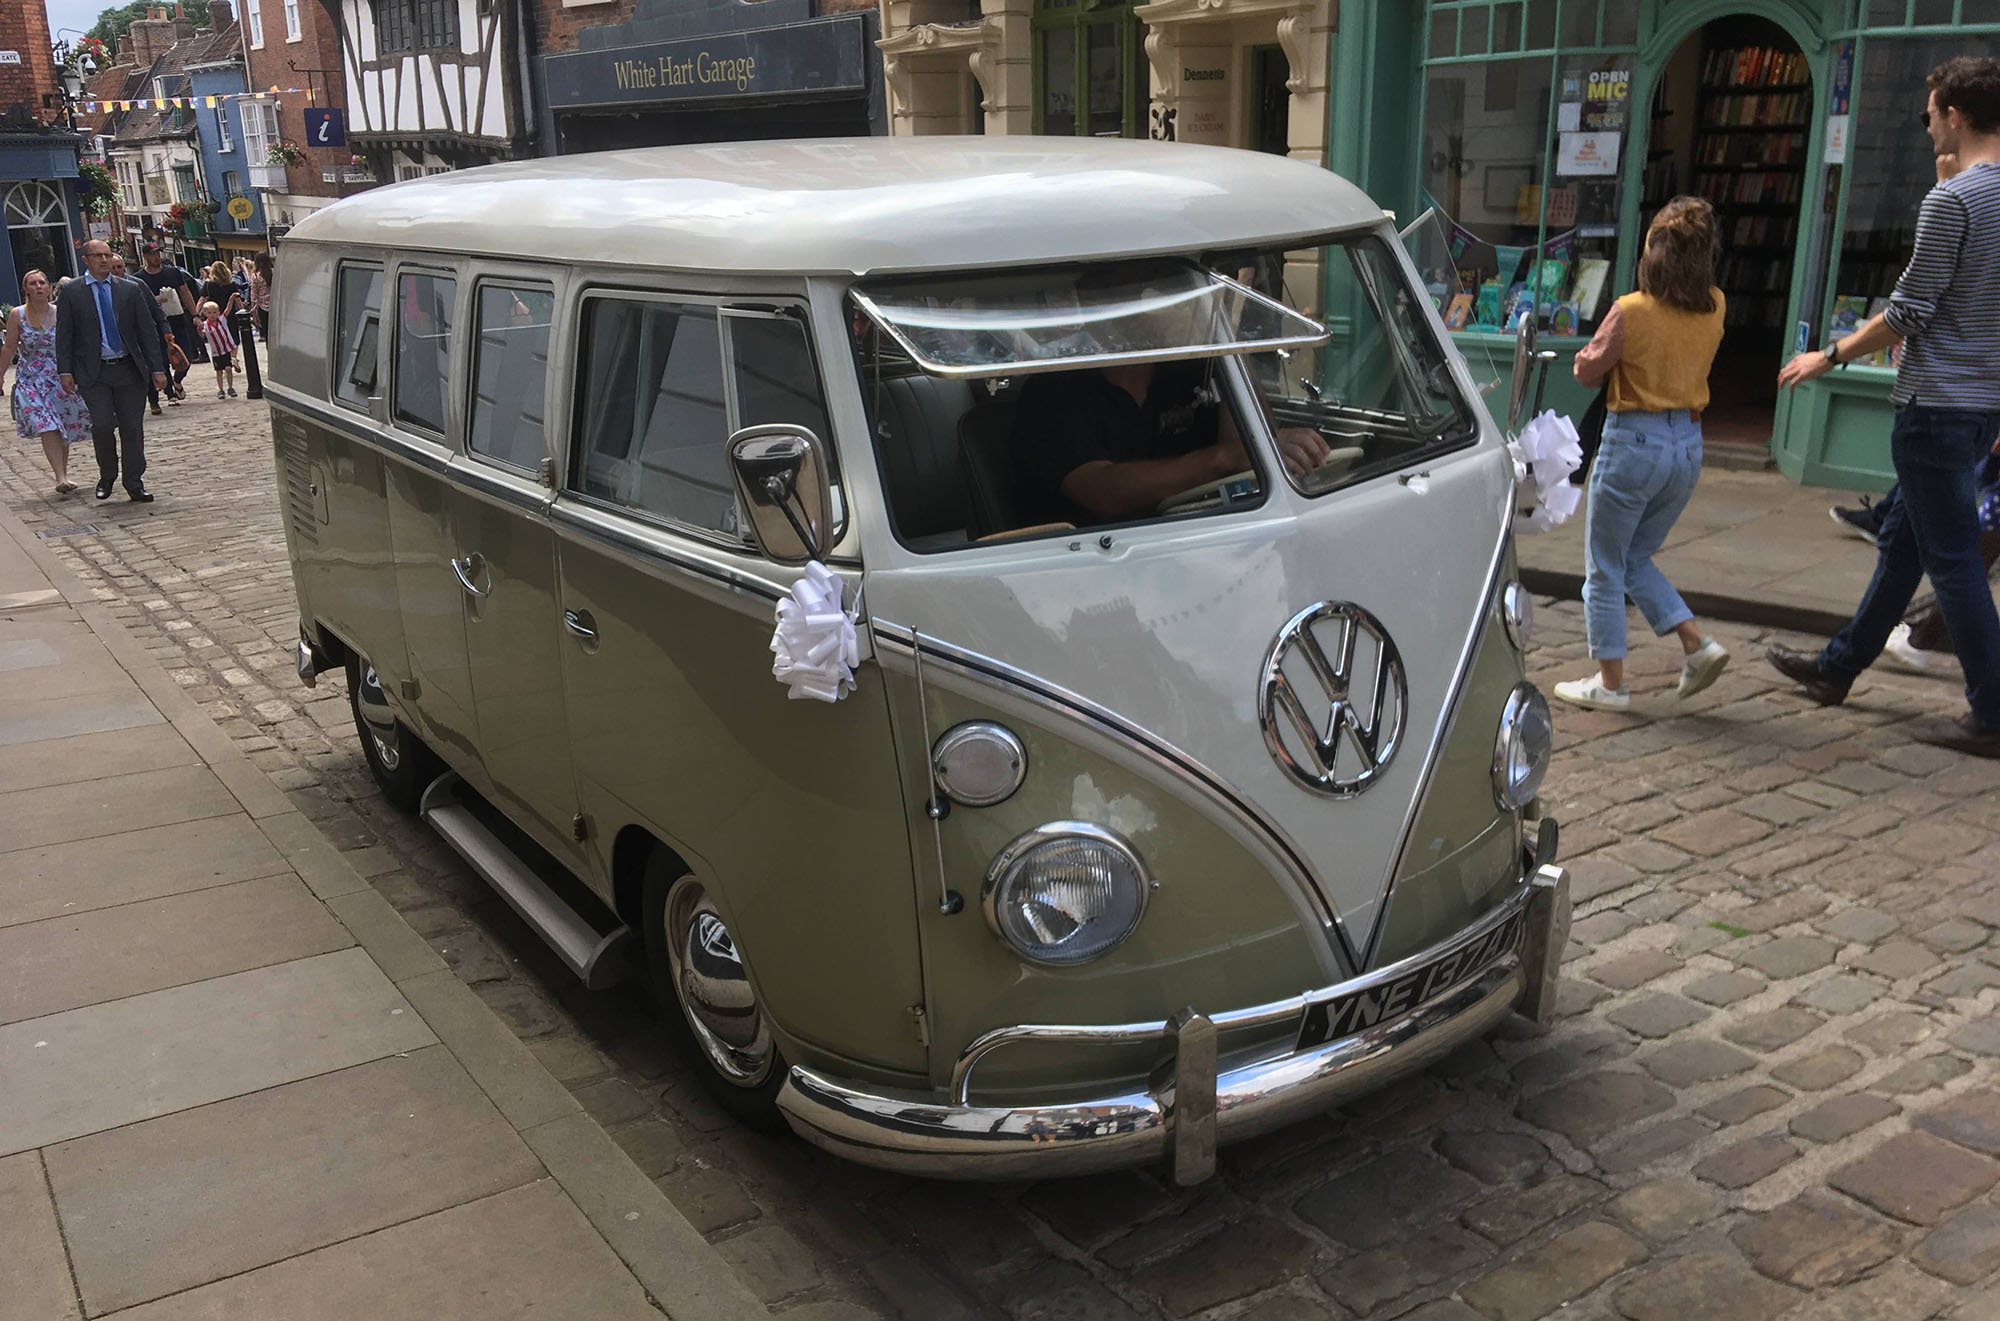 vw splitty spotted in Lincoln